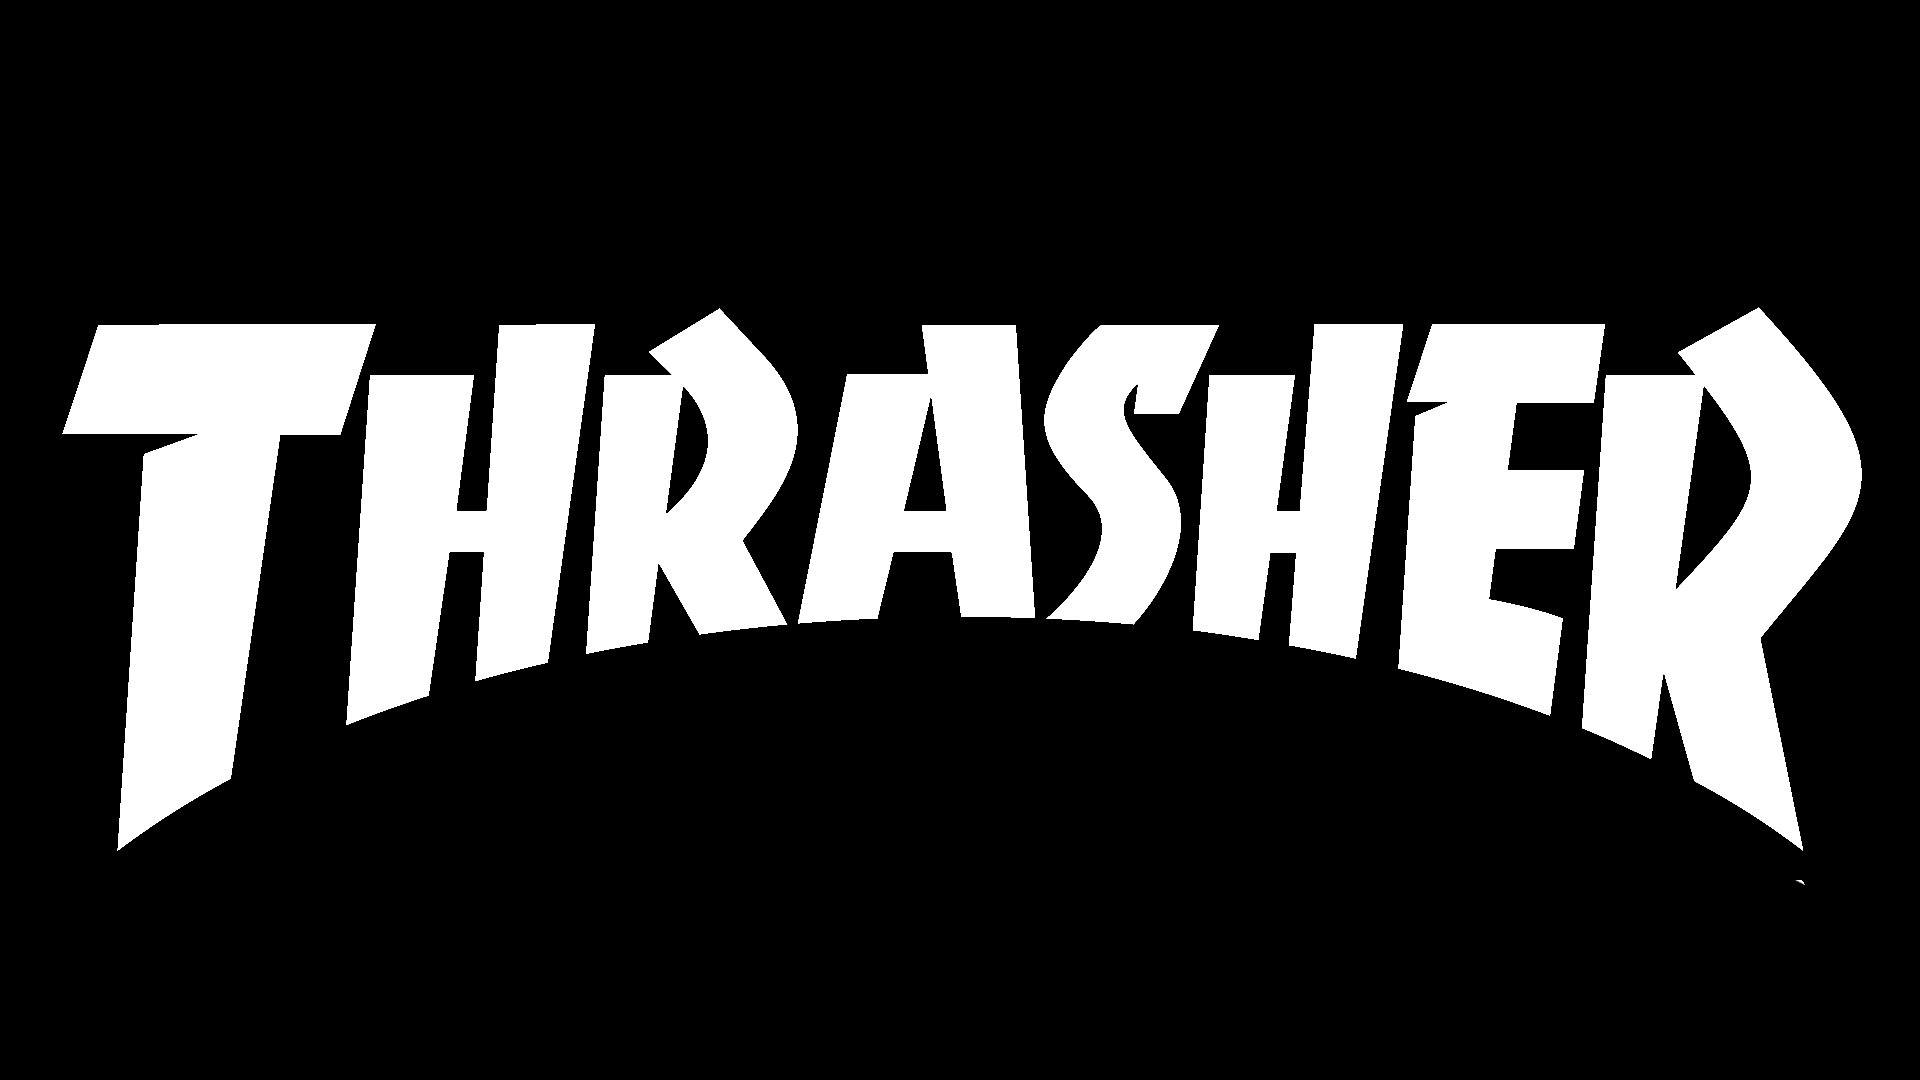 Meaning Thrasher logo and symbol  history and evolution